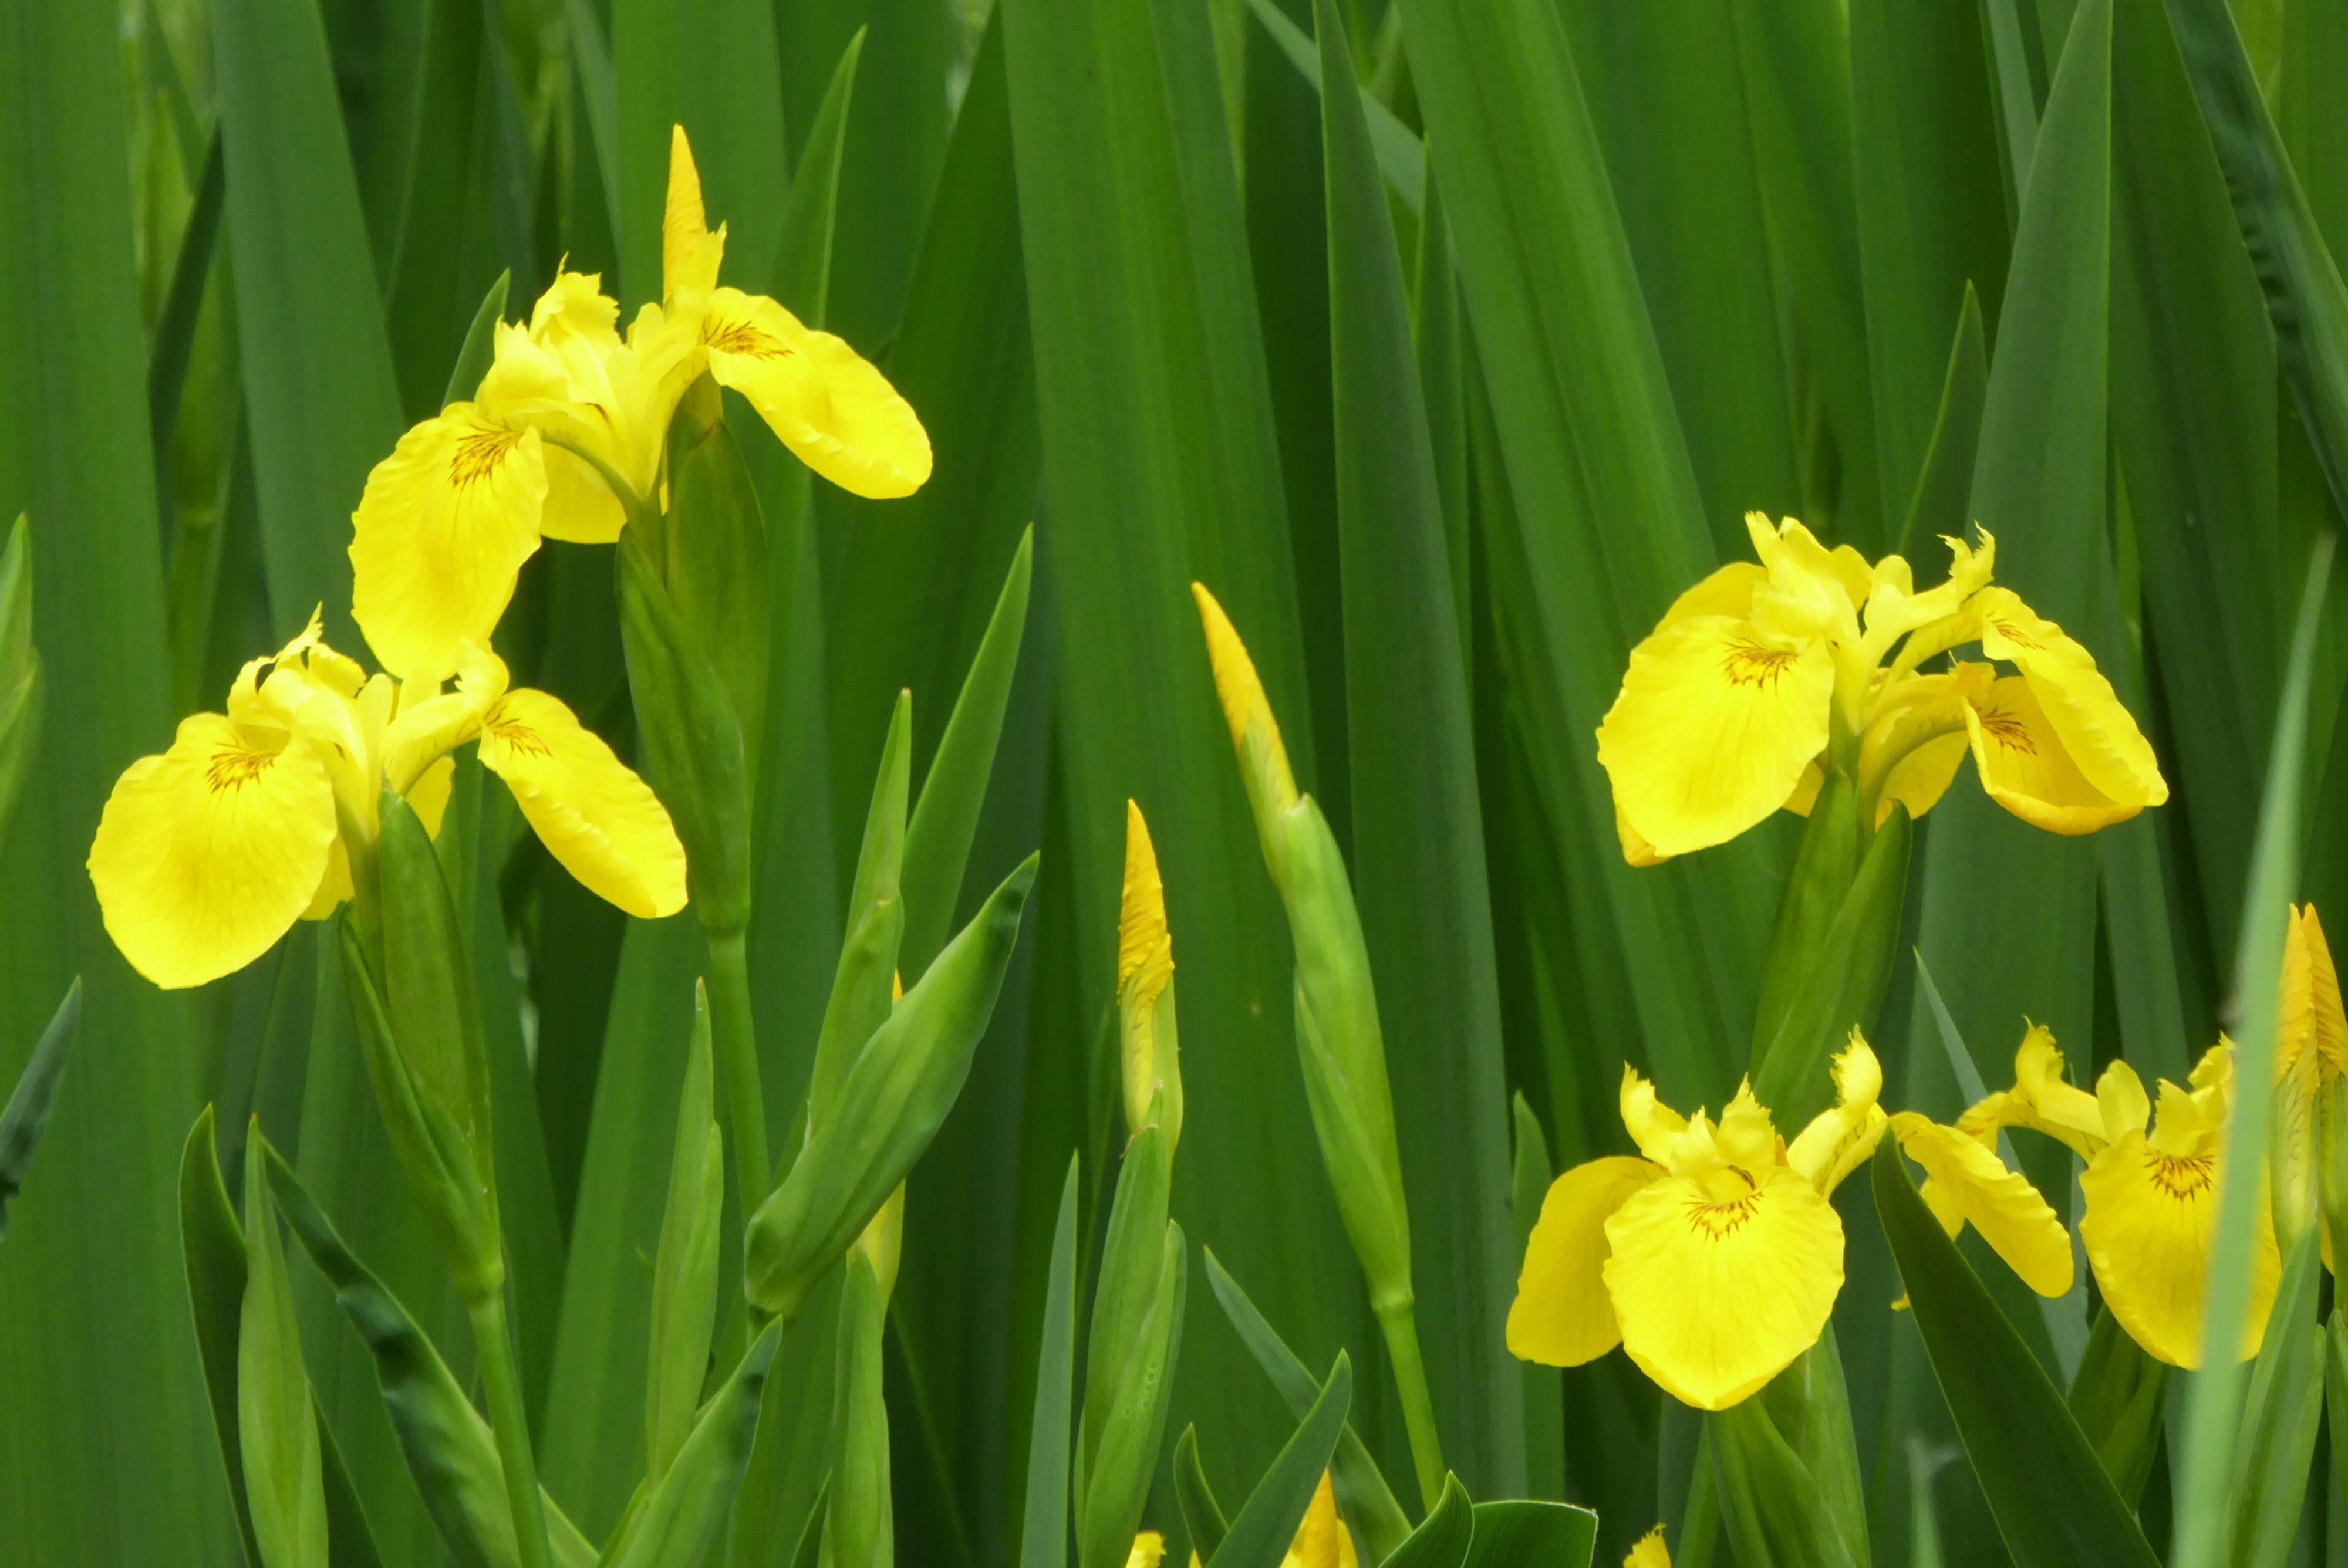 Iris Pseudacorus Is A Species Of Iris Native To Europe Western Asia And Northwest Africa Common Names Include Yellow Iris And Ye Rhizome Plants Wild Flowers